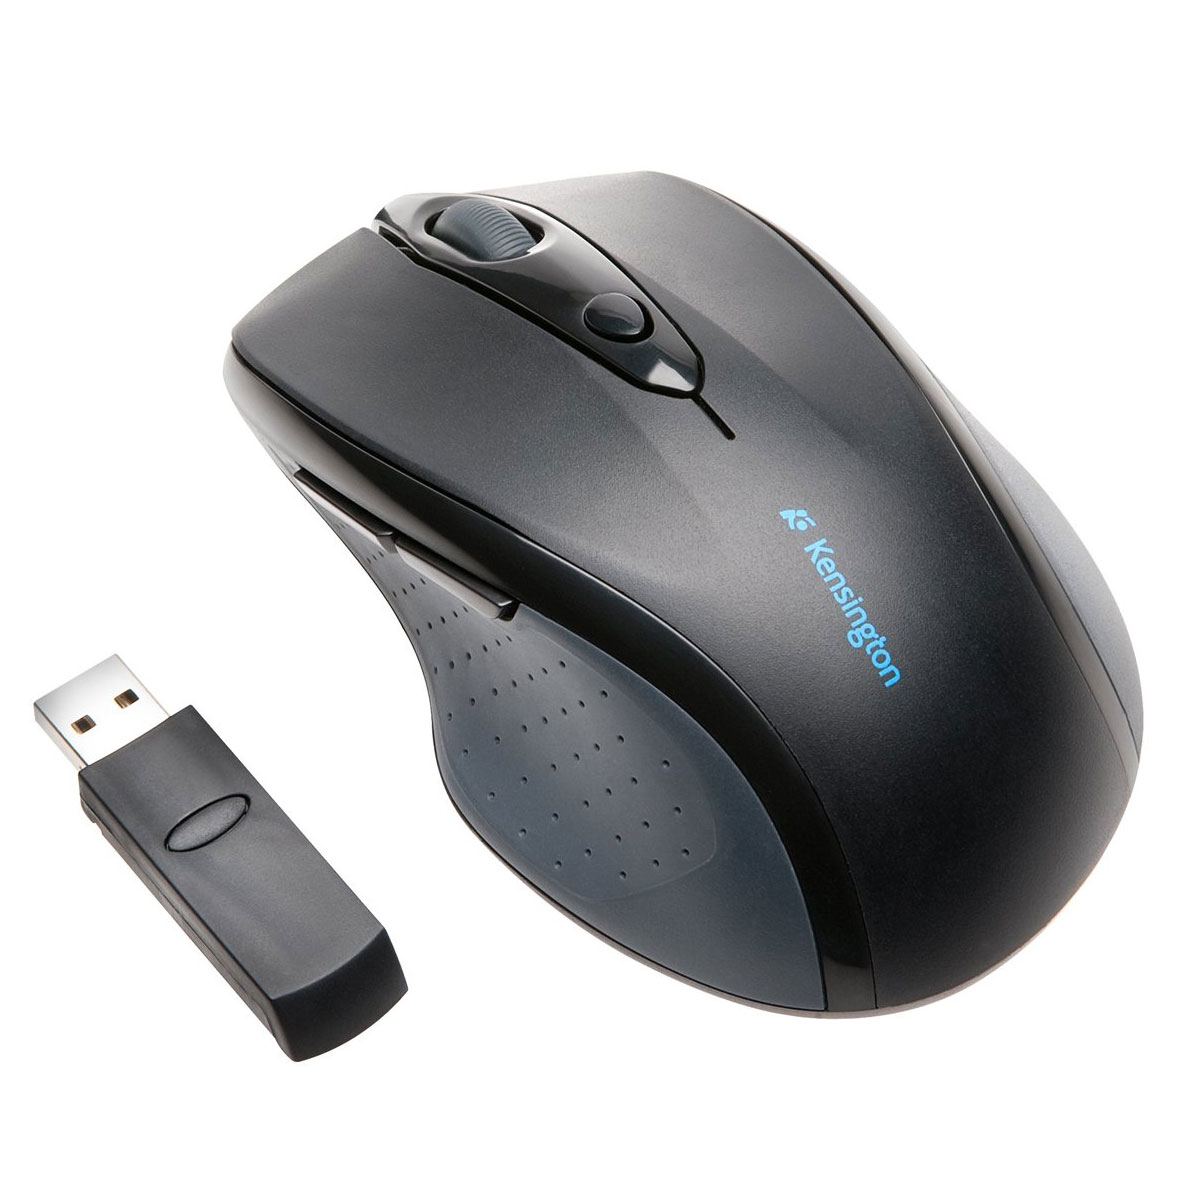 kensington pro fit wireless mouse souris pc kensington sur. Black Bedroom Furniture Sets. Home Design Ideas